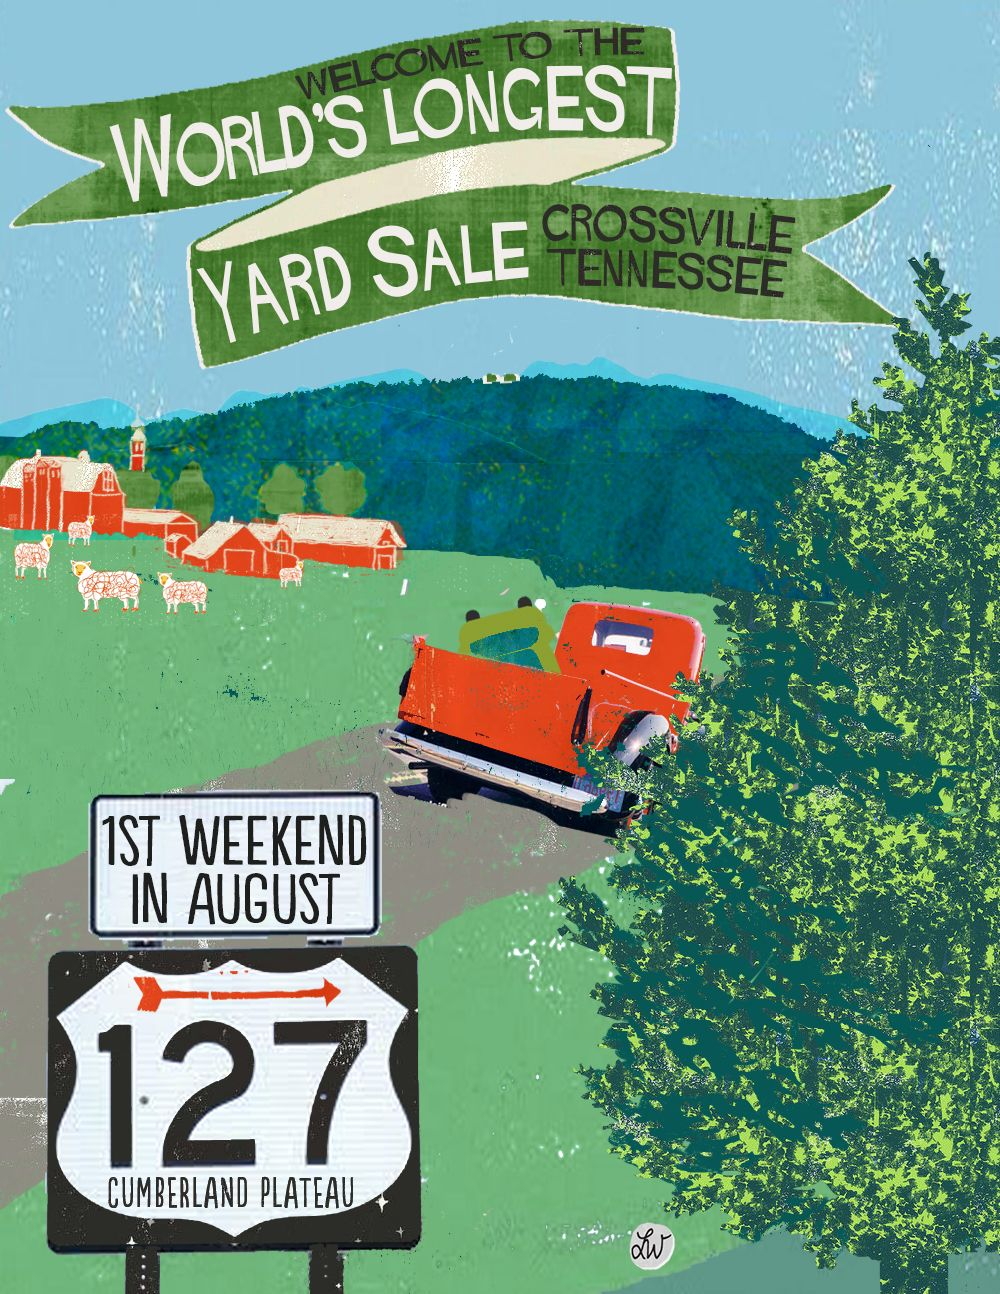 Yard sales crossville tn